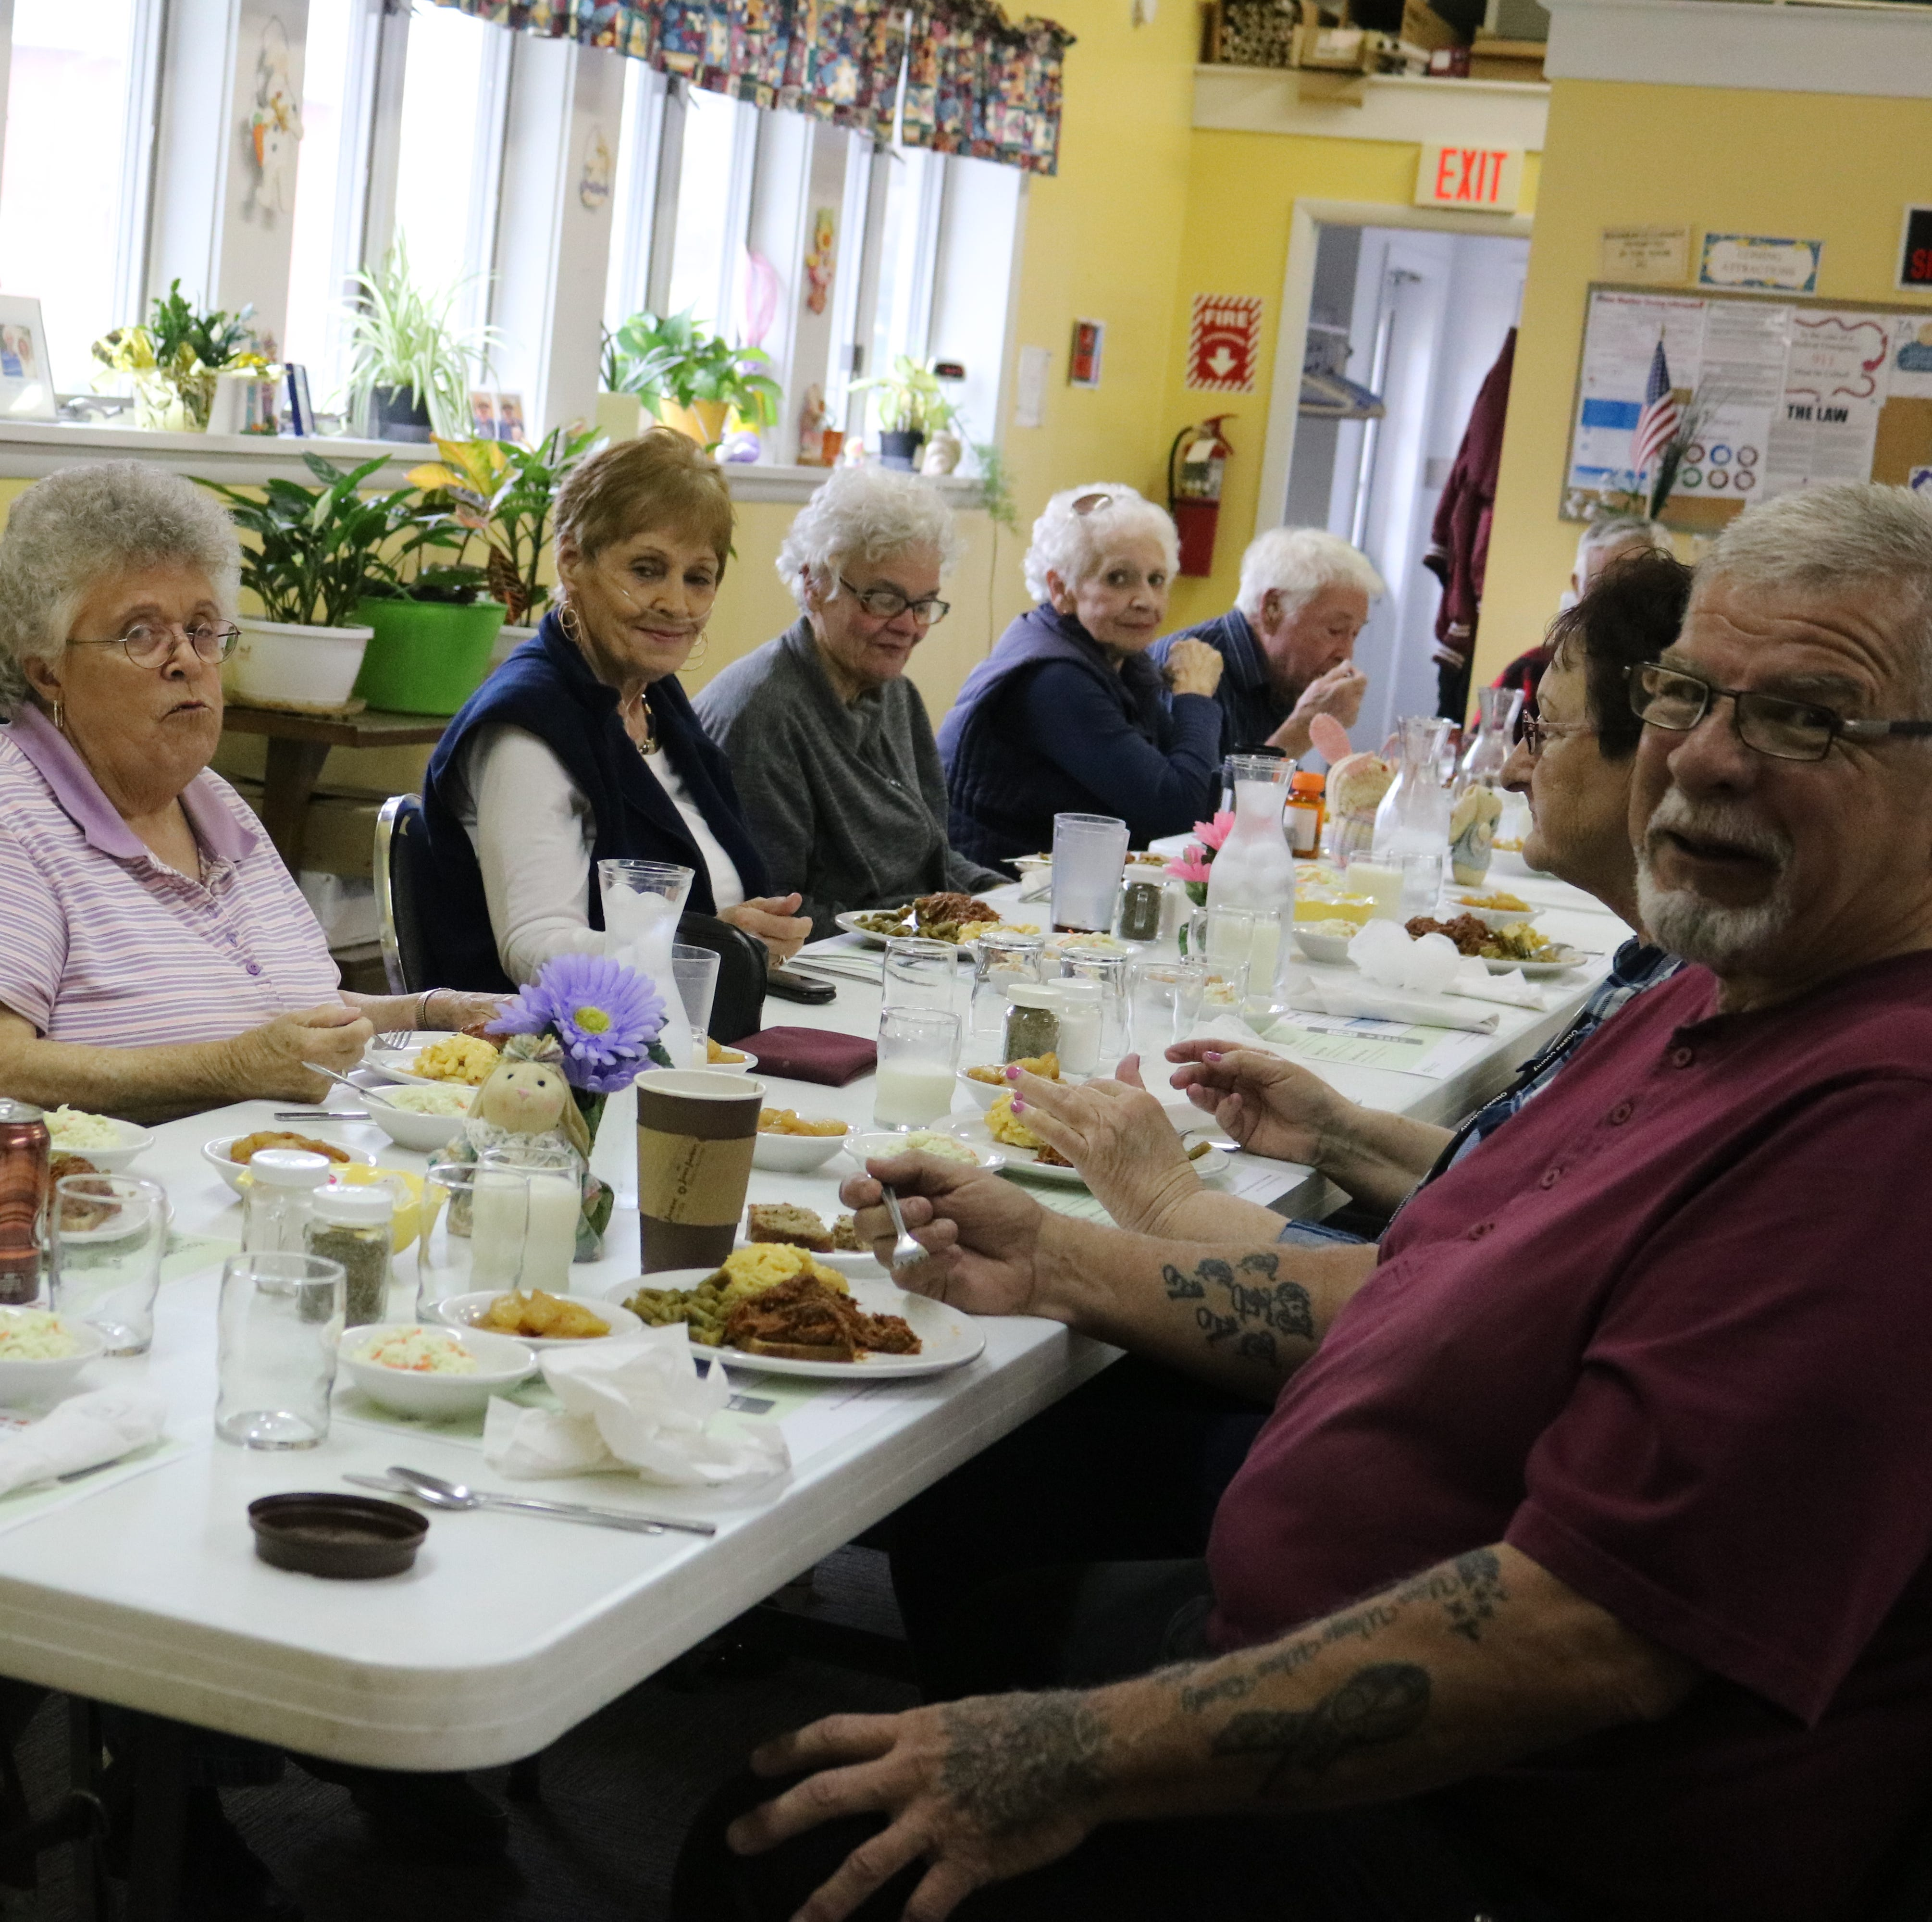 'Off-hours' use limited at Port Clinton Senior Center